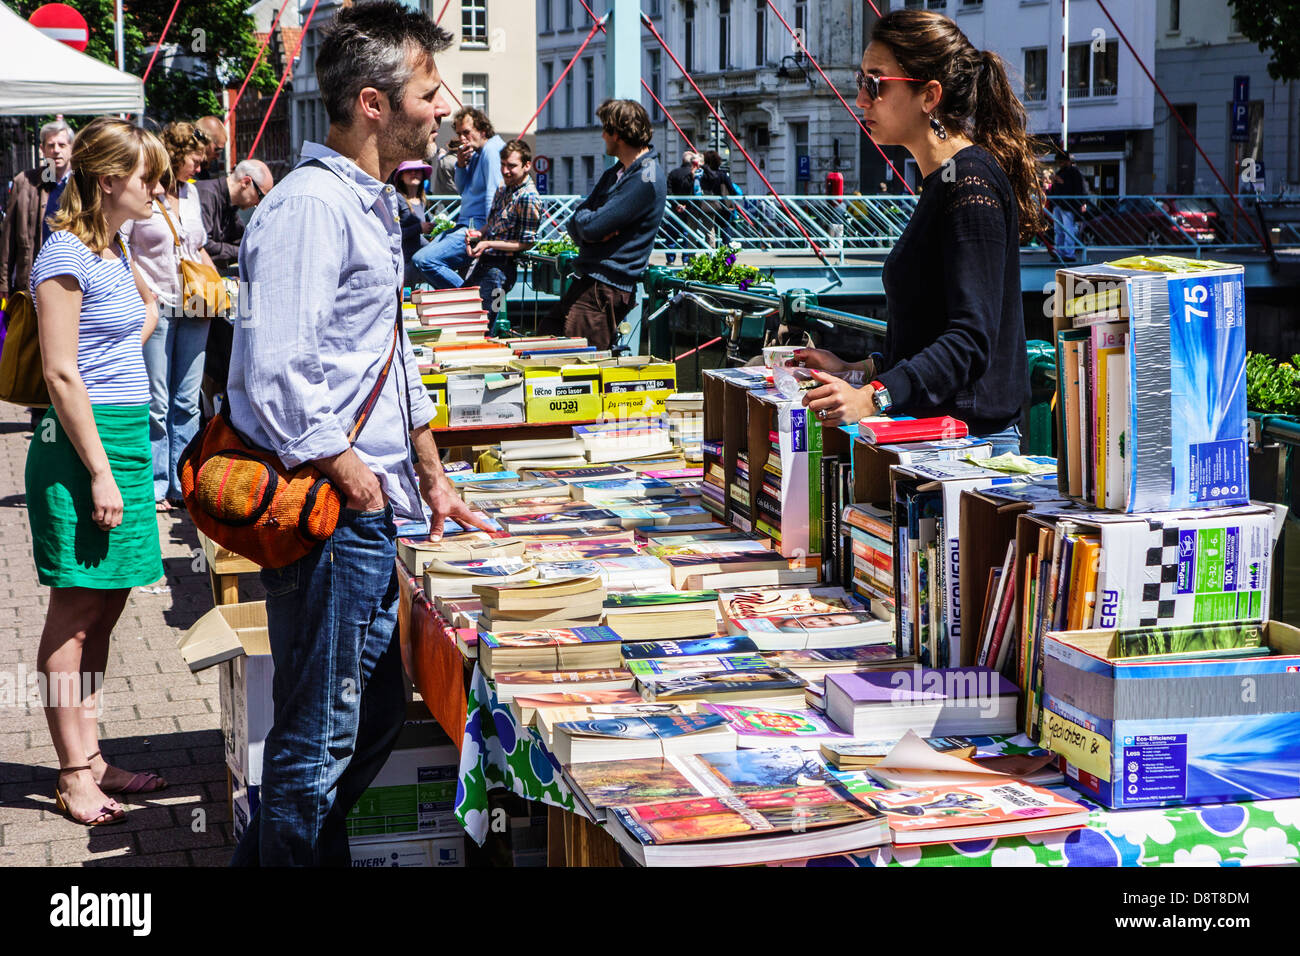 Man buying secondhand used books from stallholder at the Ajuinlei book market in Ghent, Belgium - Stock Image